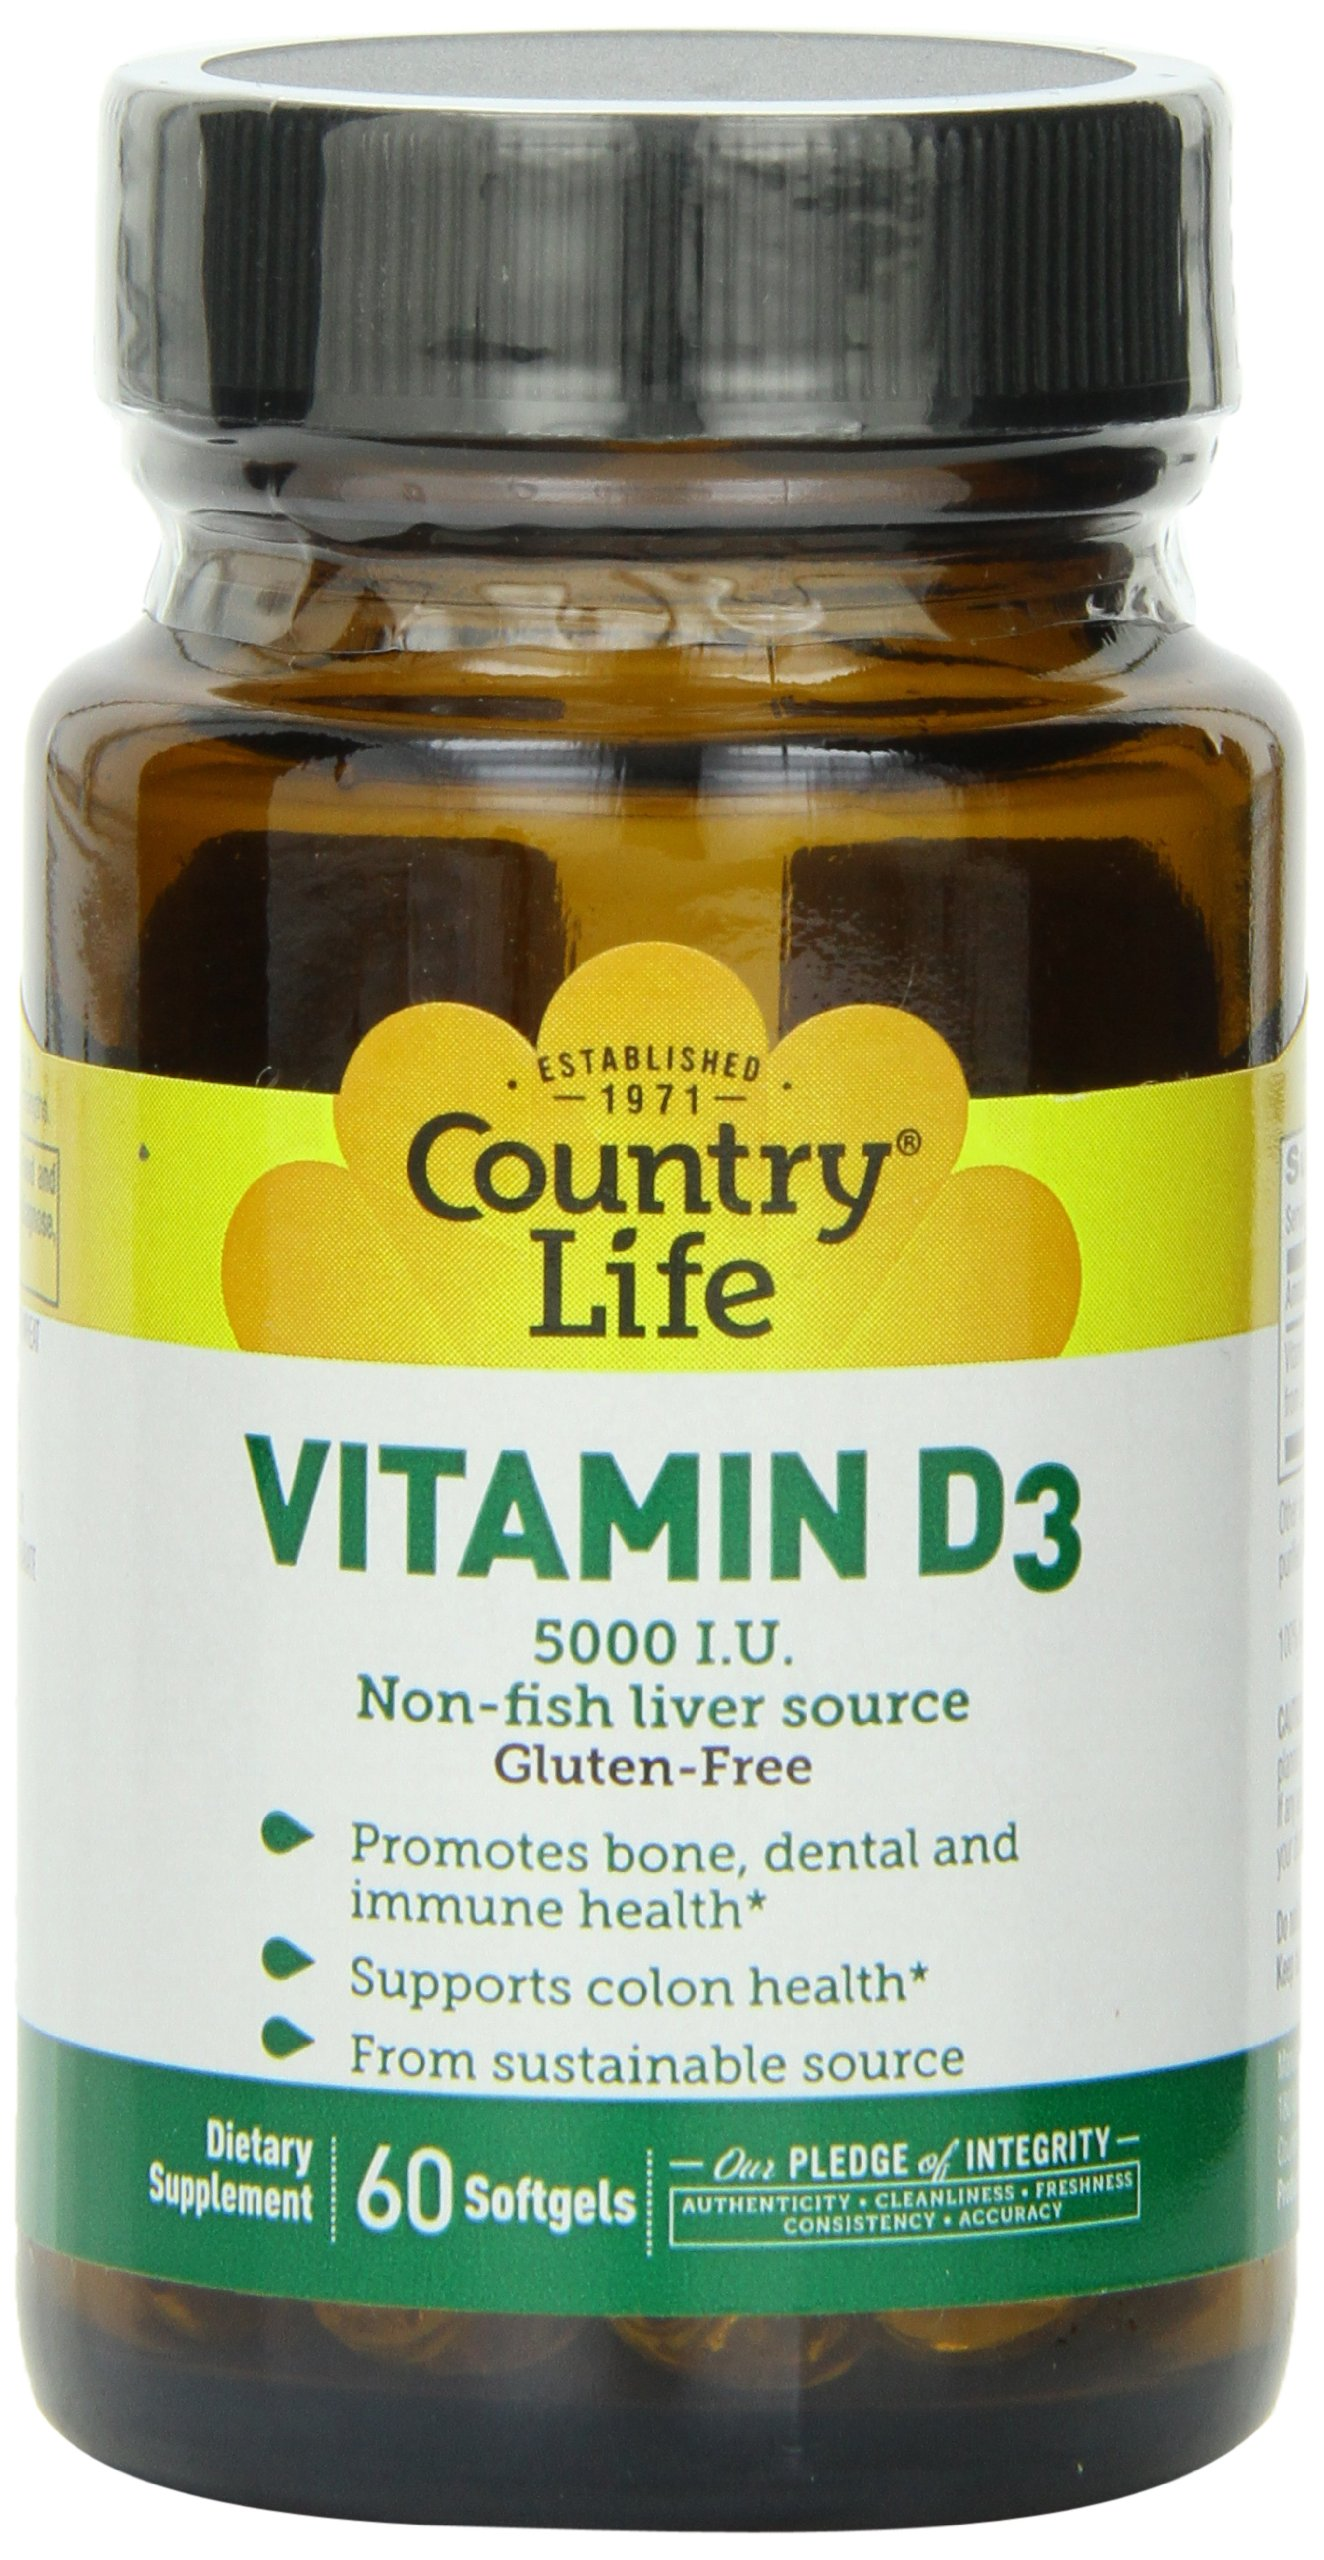 Country Life Vitamin D3 5 I.u., 60-Count (Pack of 2)